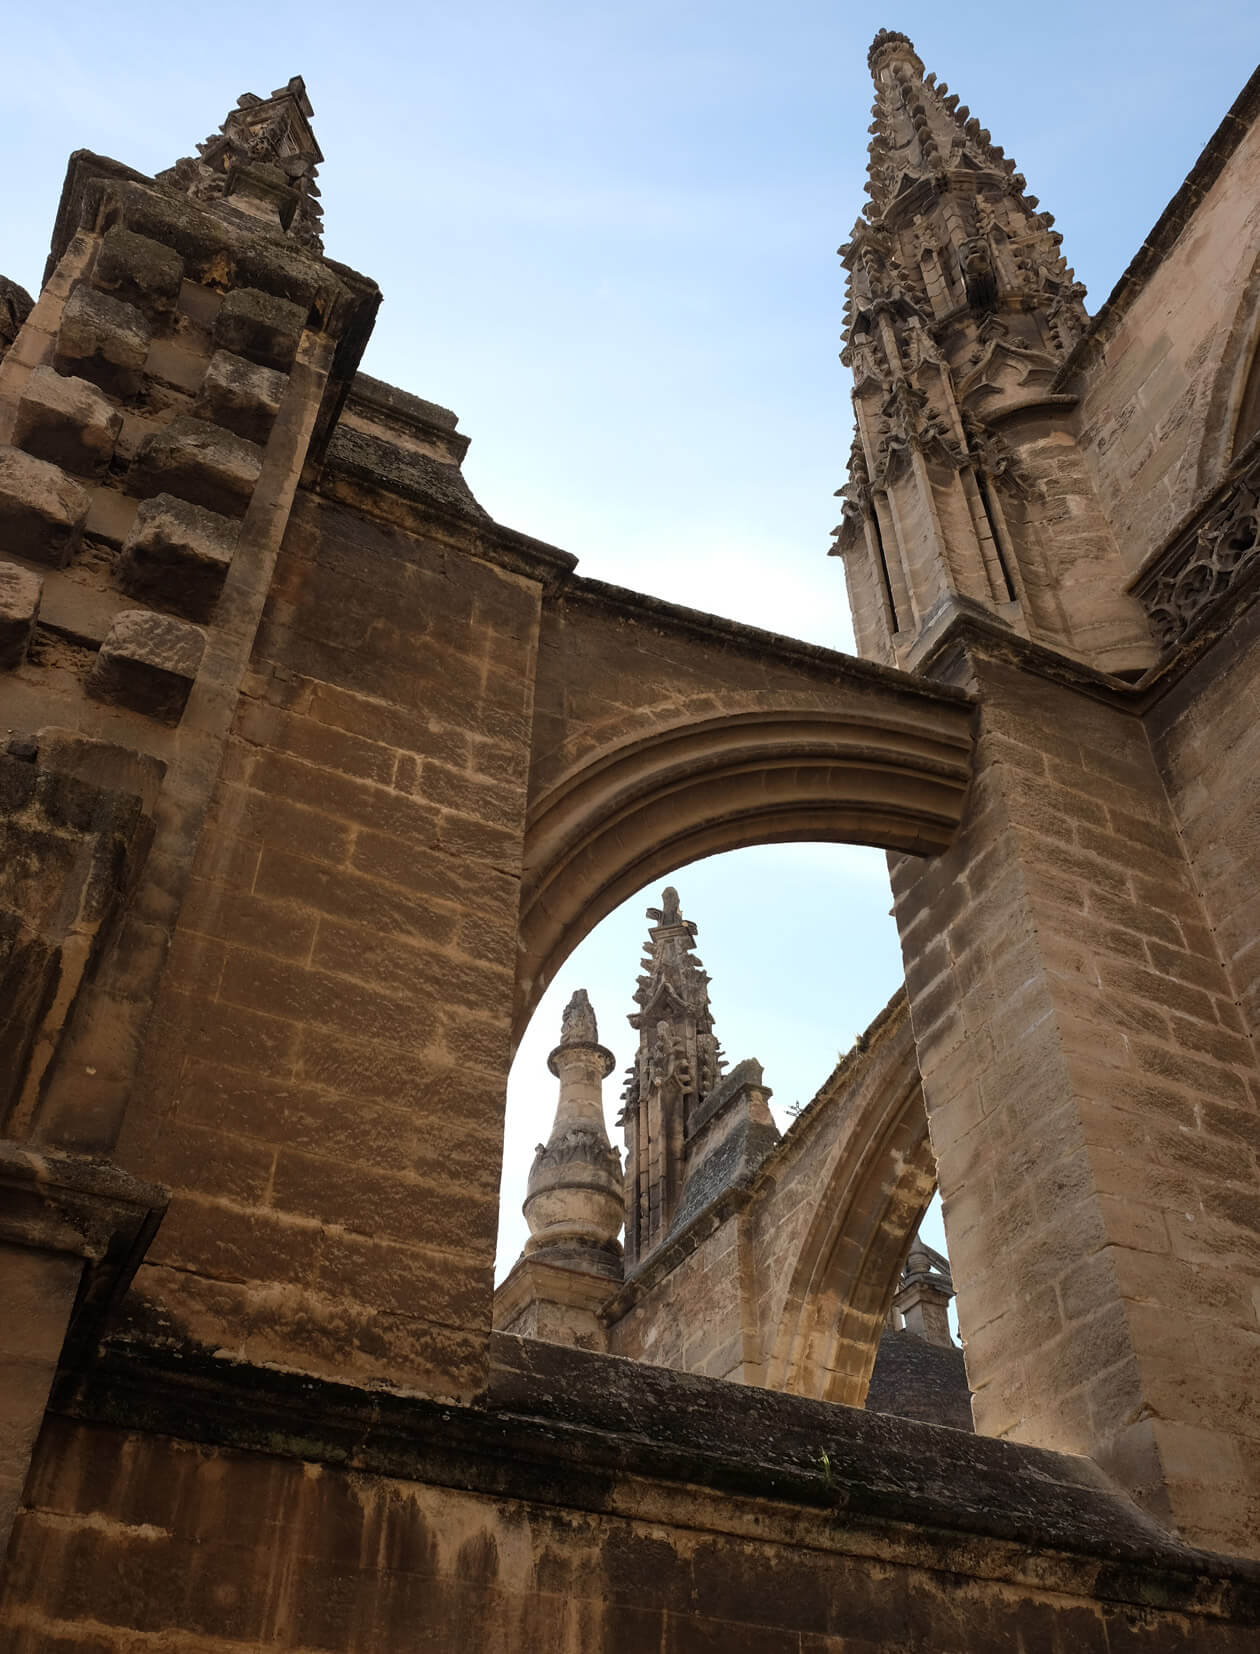 A guided tour of the cathedral rooftop is an unforgettable experience